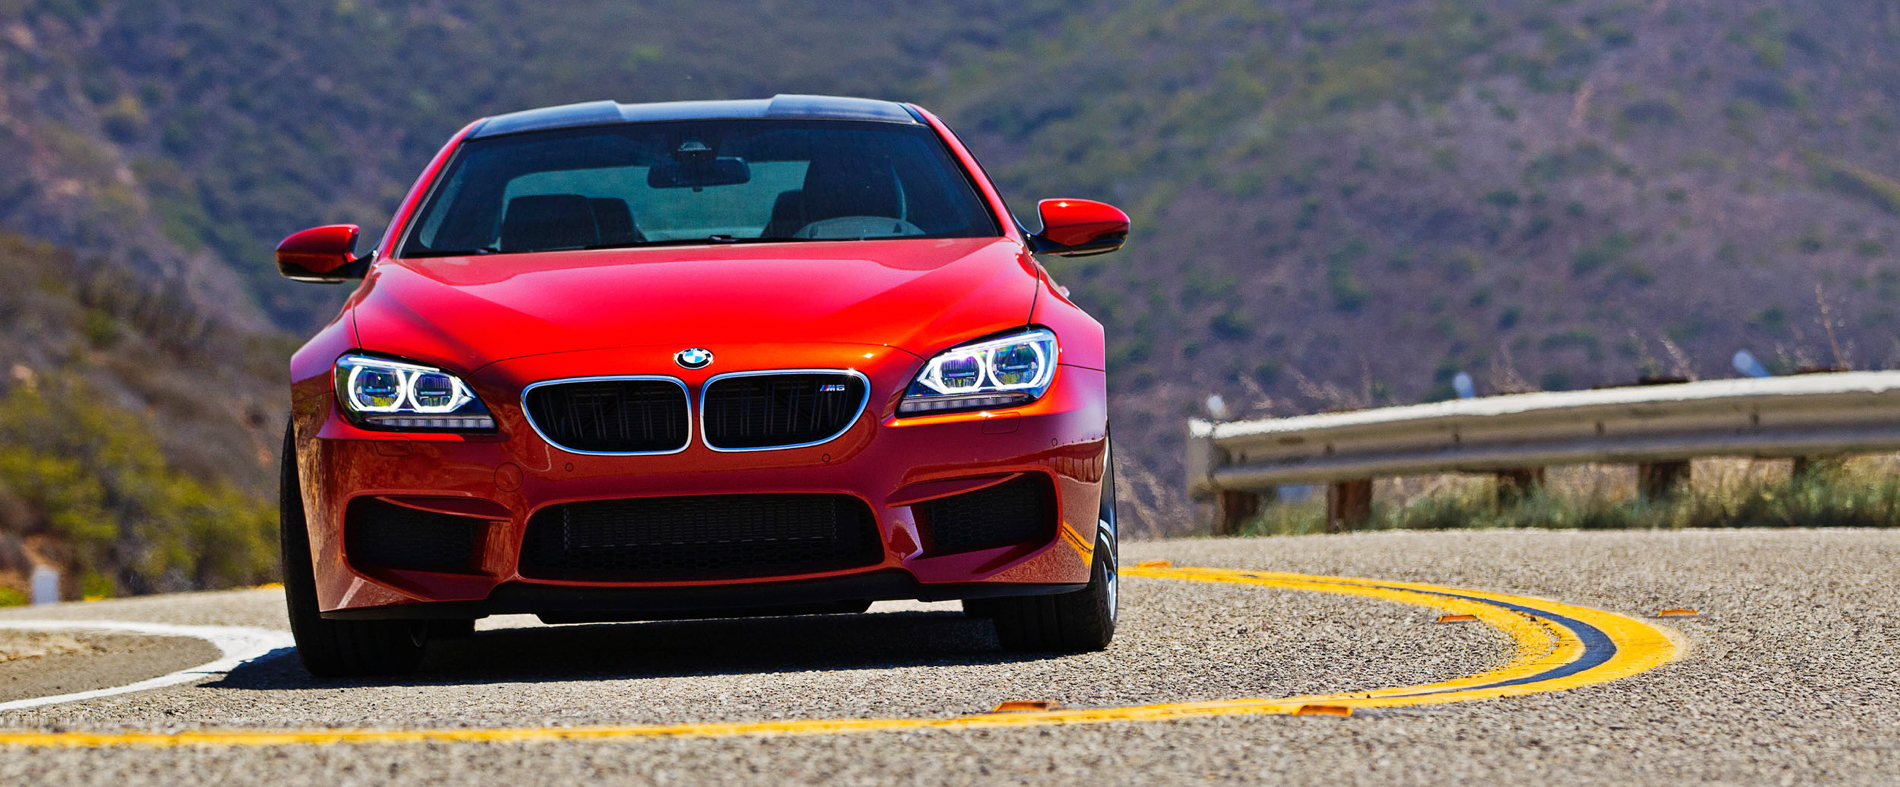 2013 bmw 6 coupe review 071